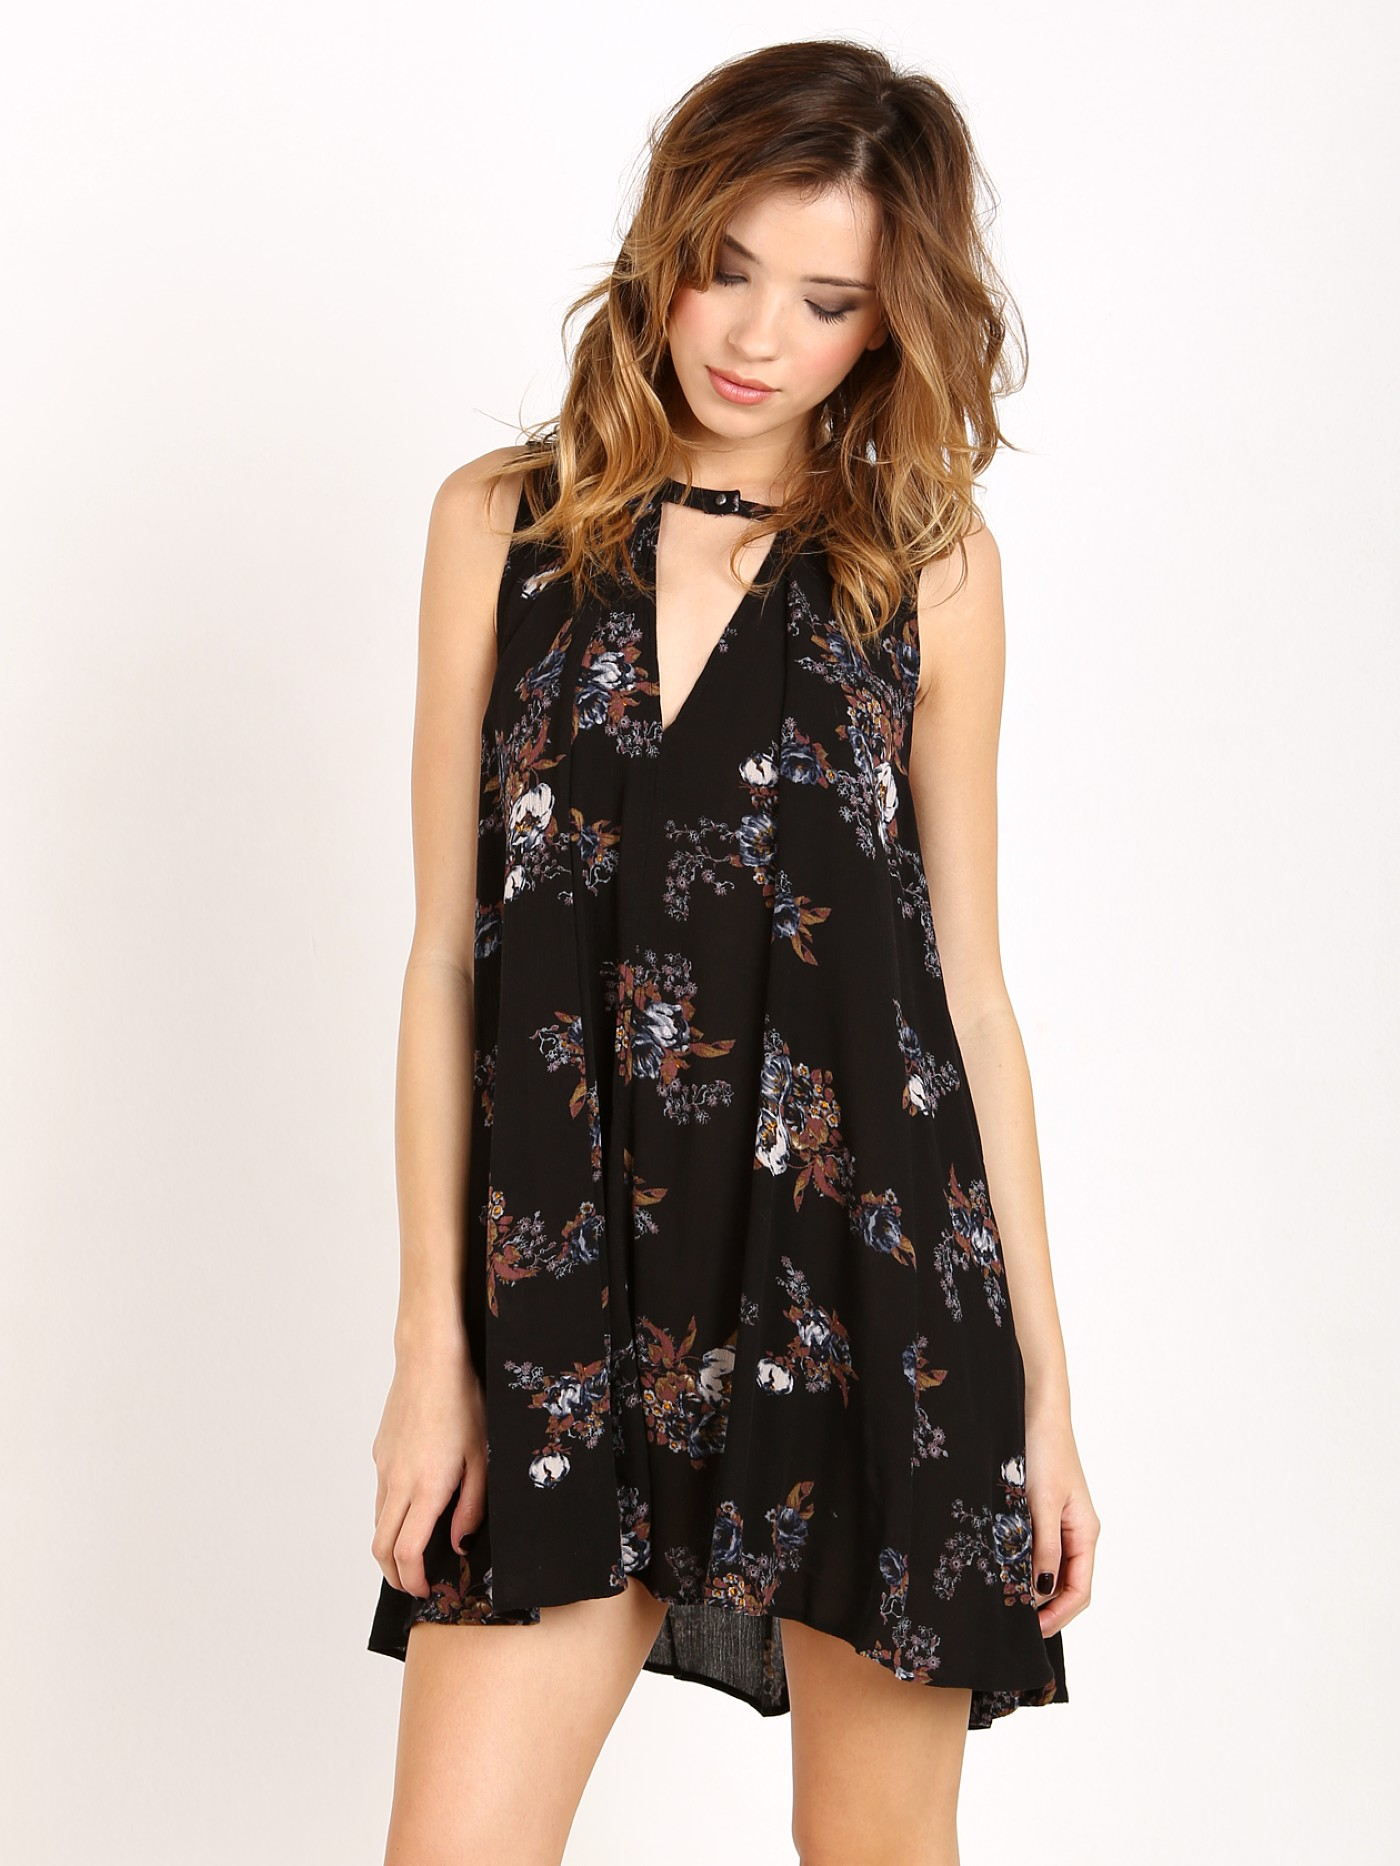 034424c32391 Free People Snap Out Of It Sleeveless Tree Swing Top Black OB413273 - Free  Shipping at Largo Drive